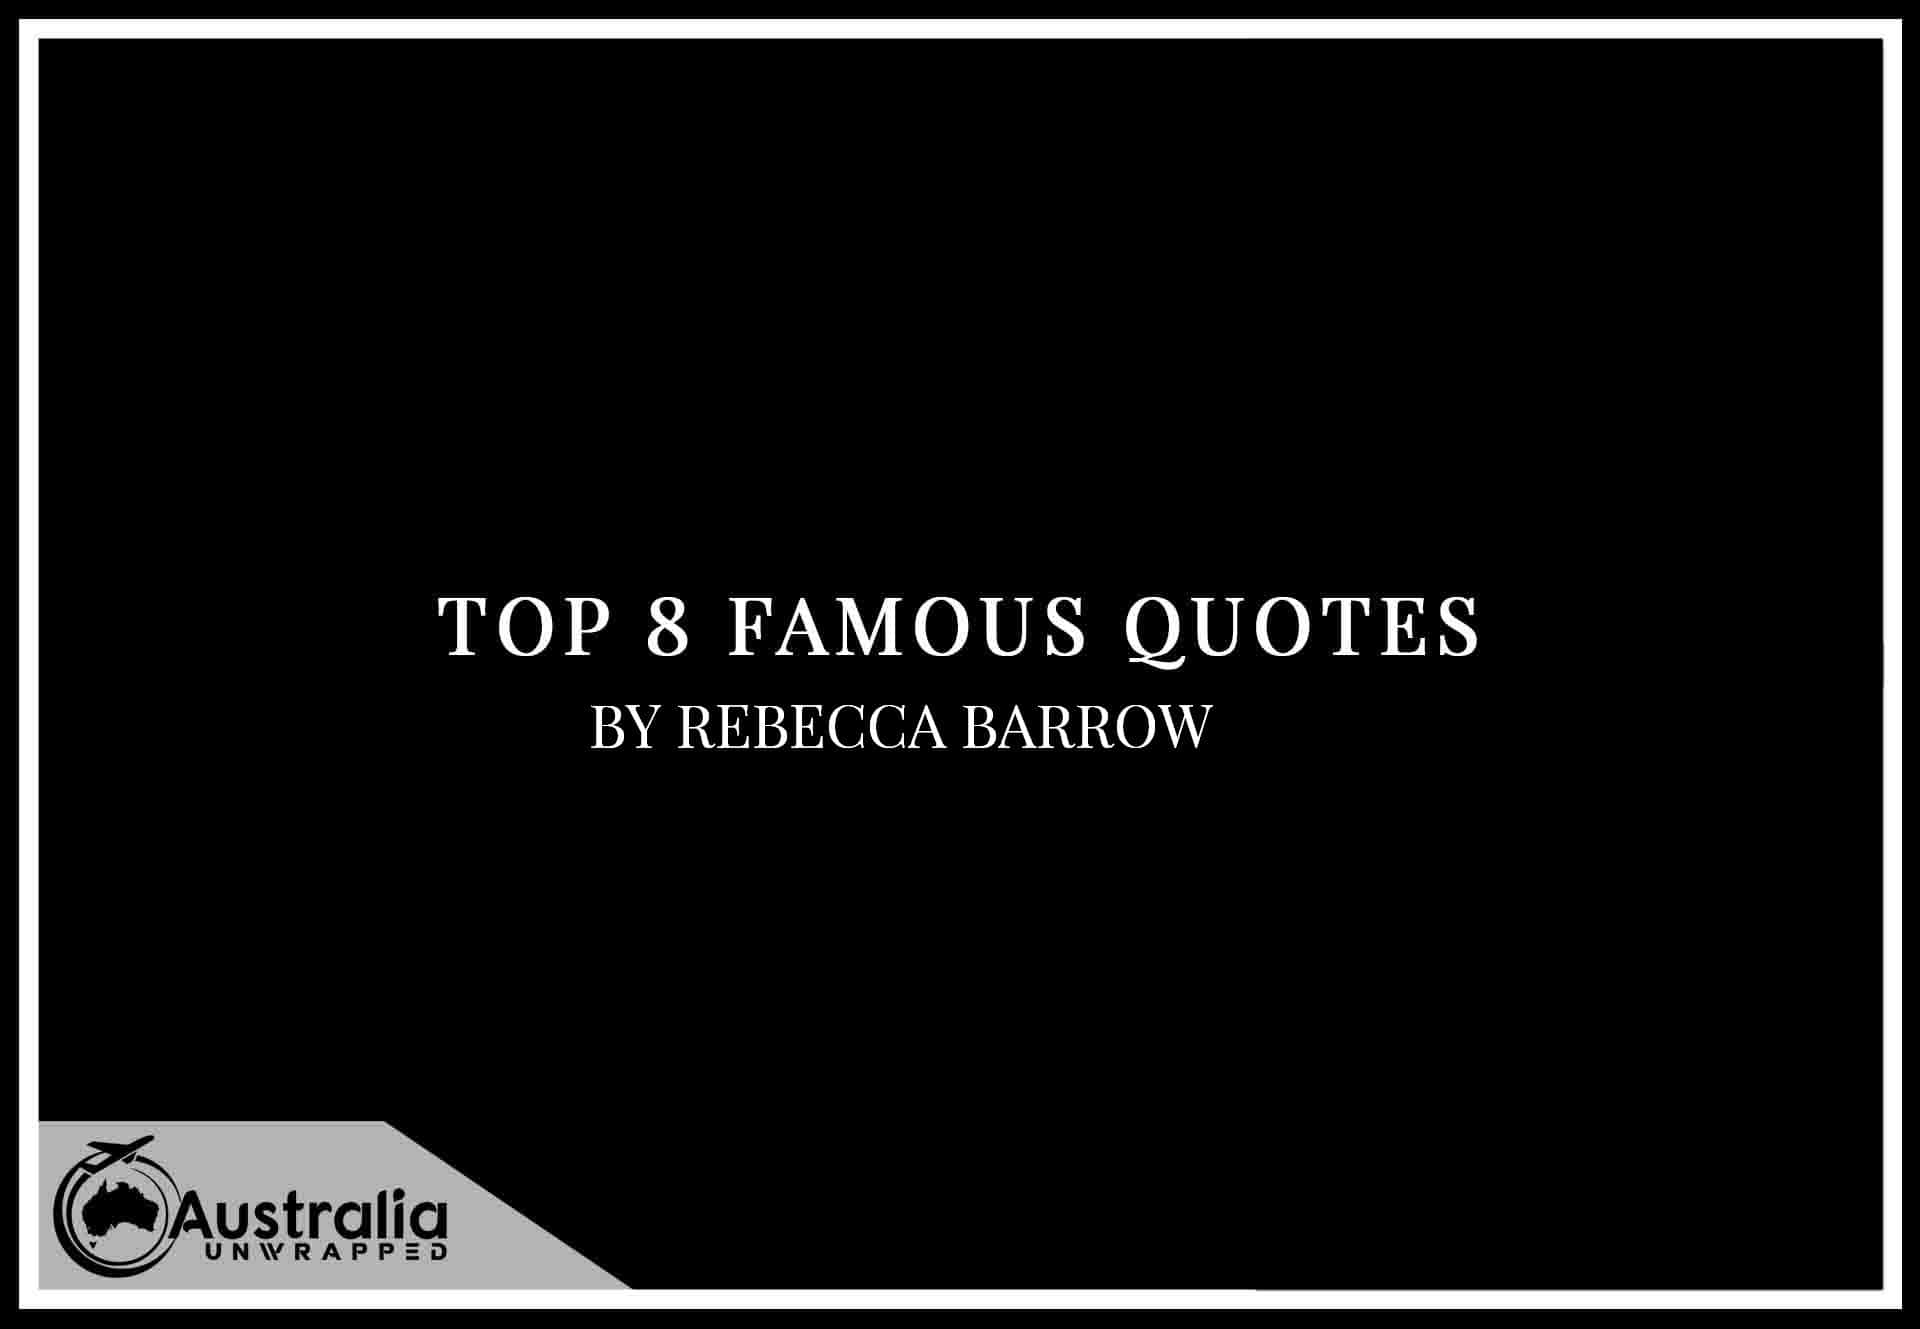 Top 8 Famous Quotes by Author Rebecca Barrow